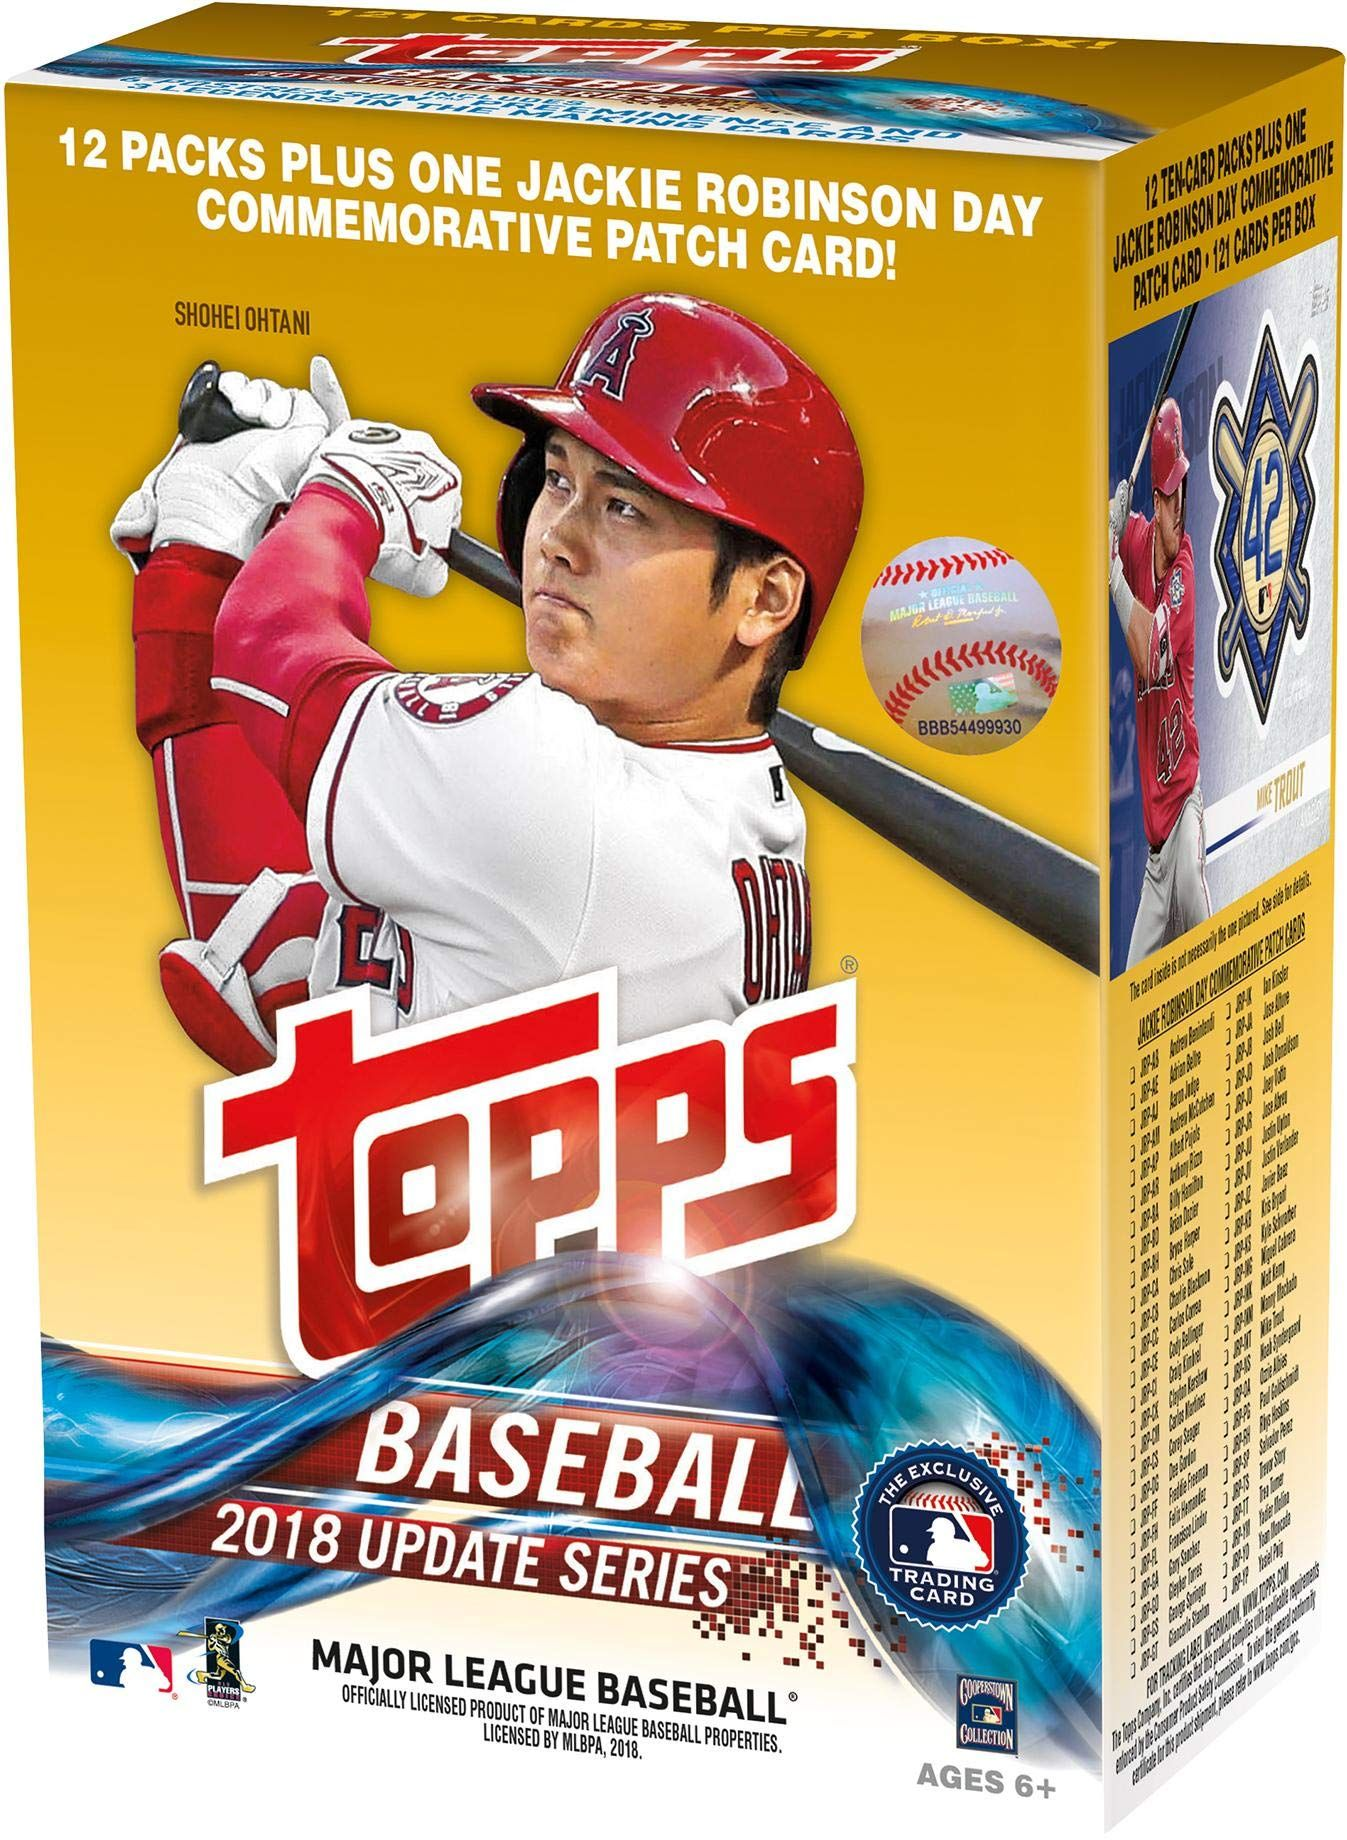 2018 topps baseball update 13 pack exclusive value box